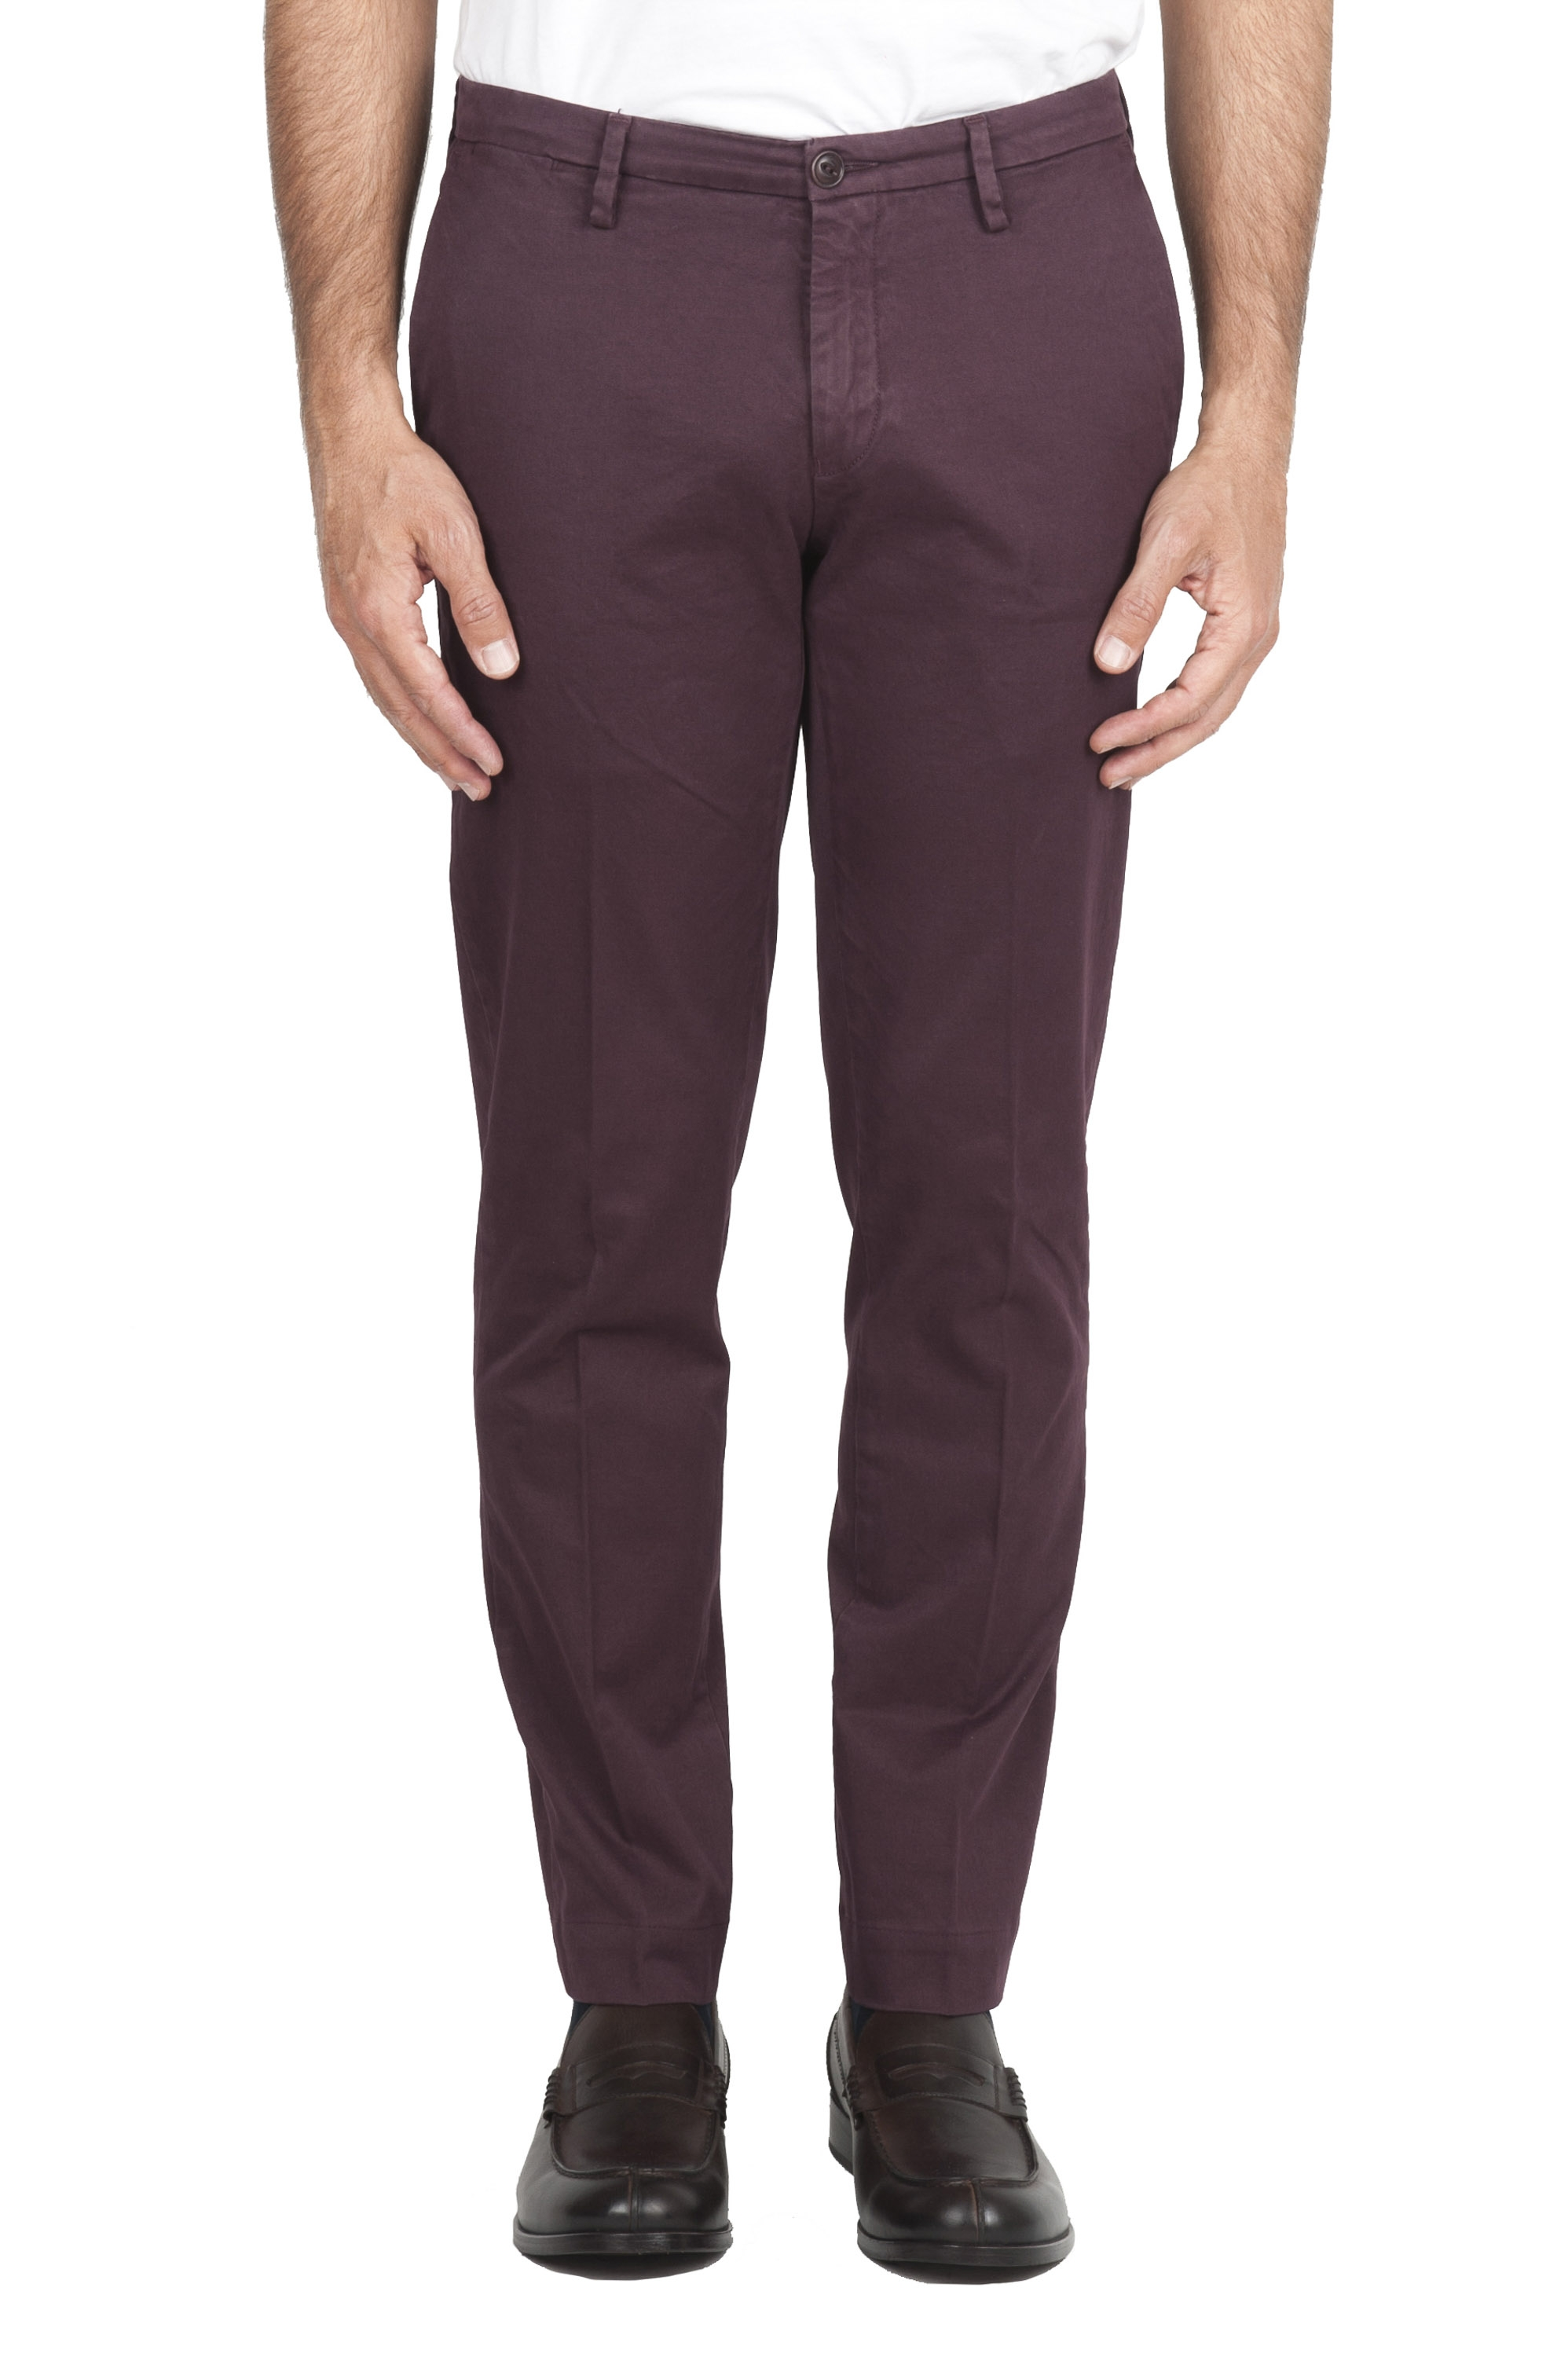 SBU 01535 Pantaloni chino classici in cotone stretch bordeaux 01